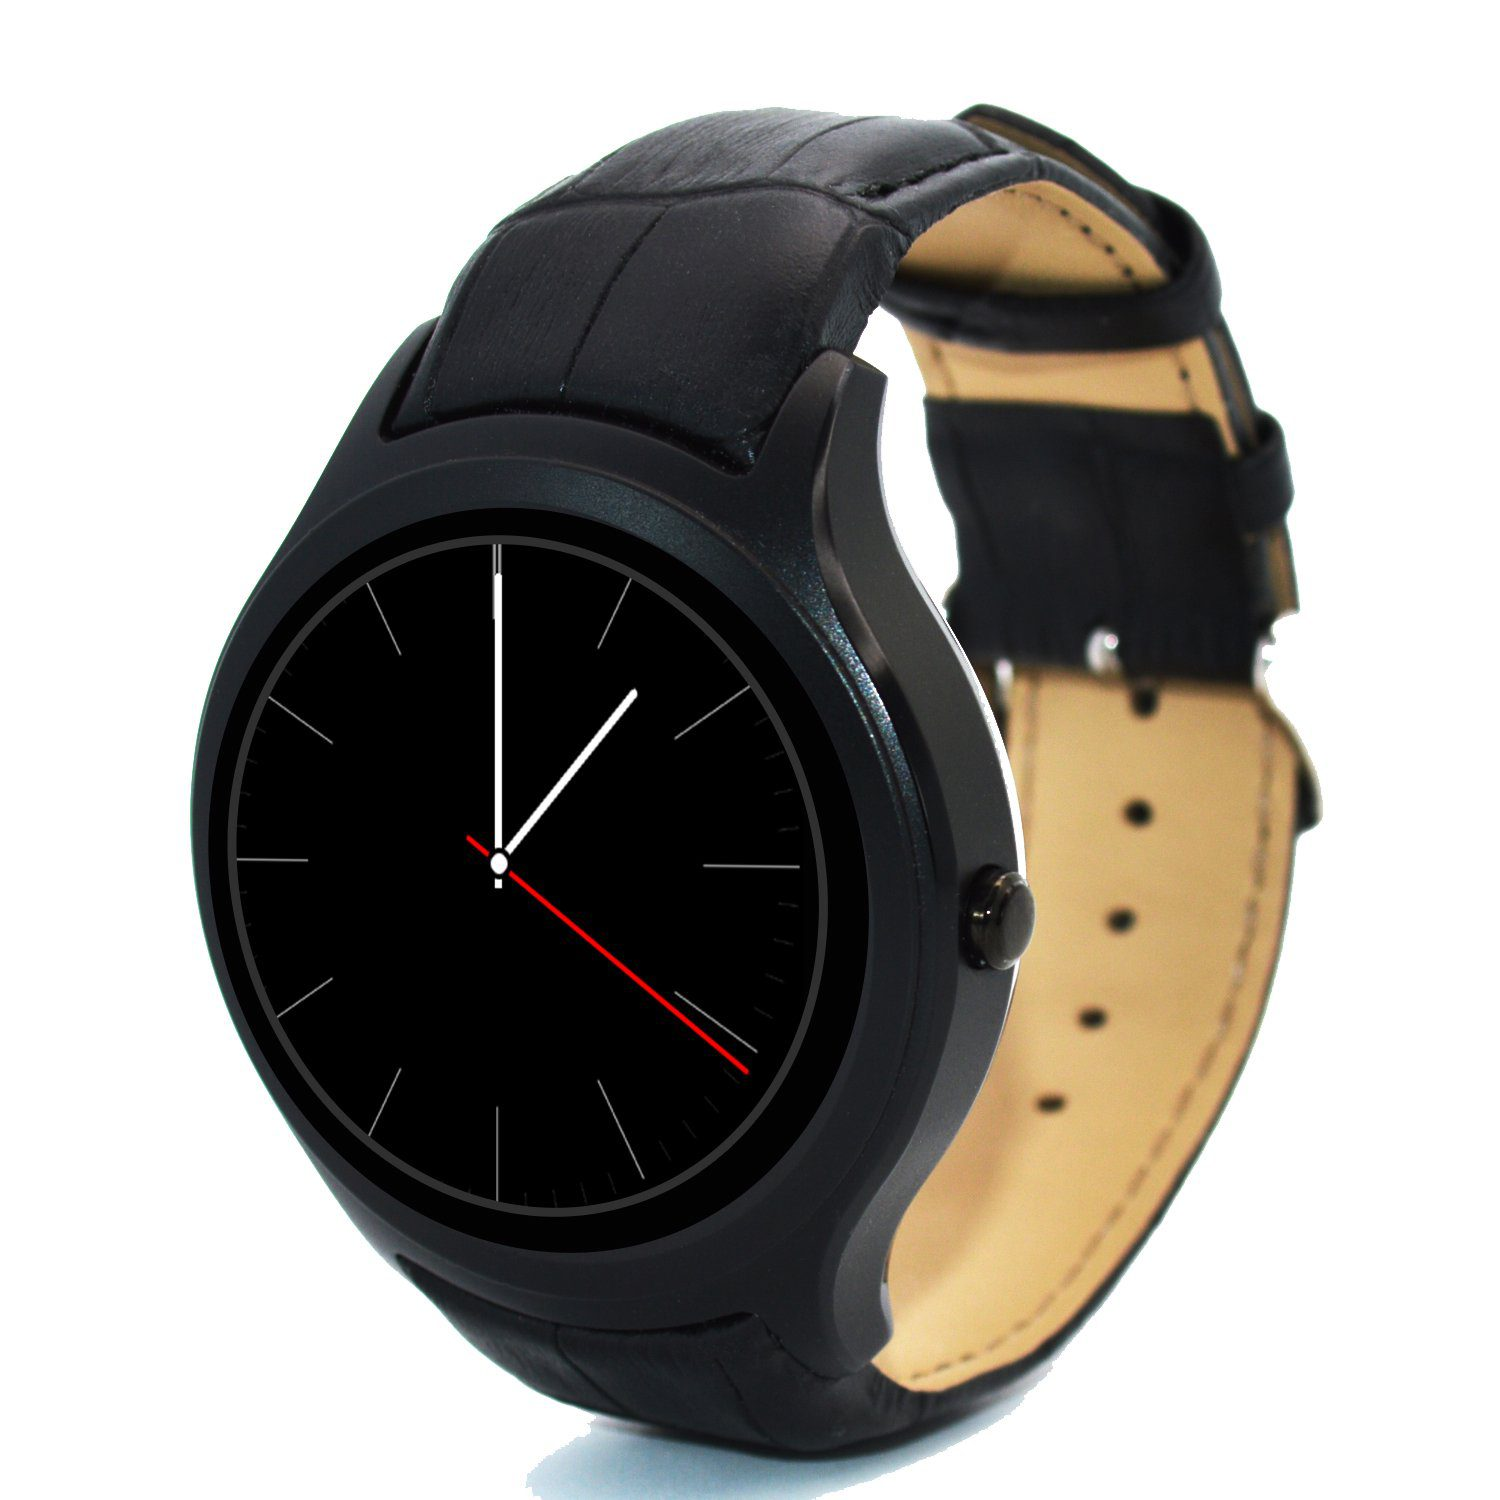 NO.1 D5 Smartwatch with Android 4.4 supports WiFi, 3G, SIM ...